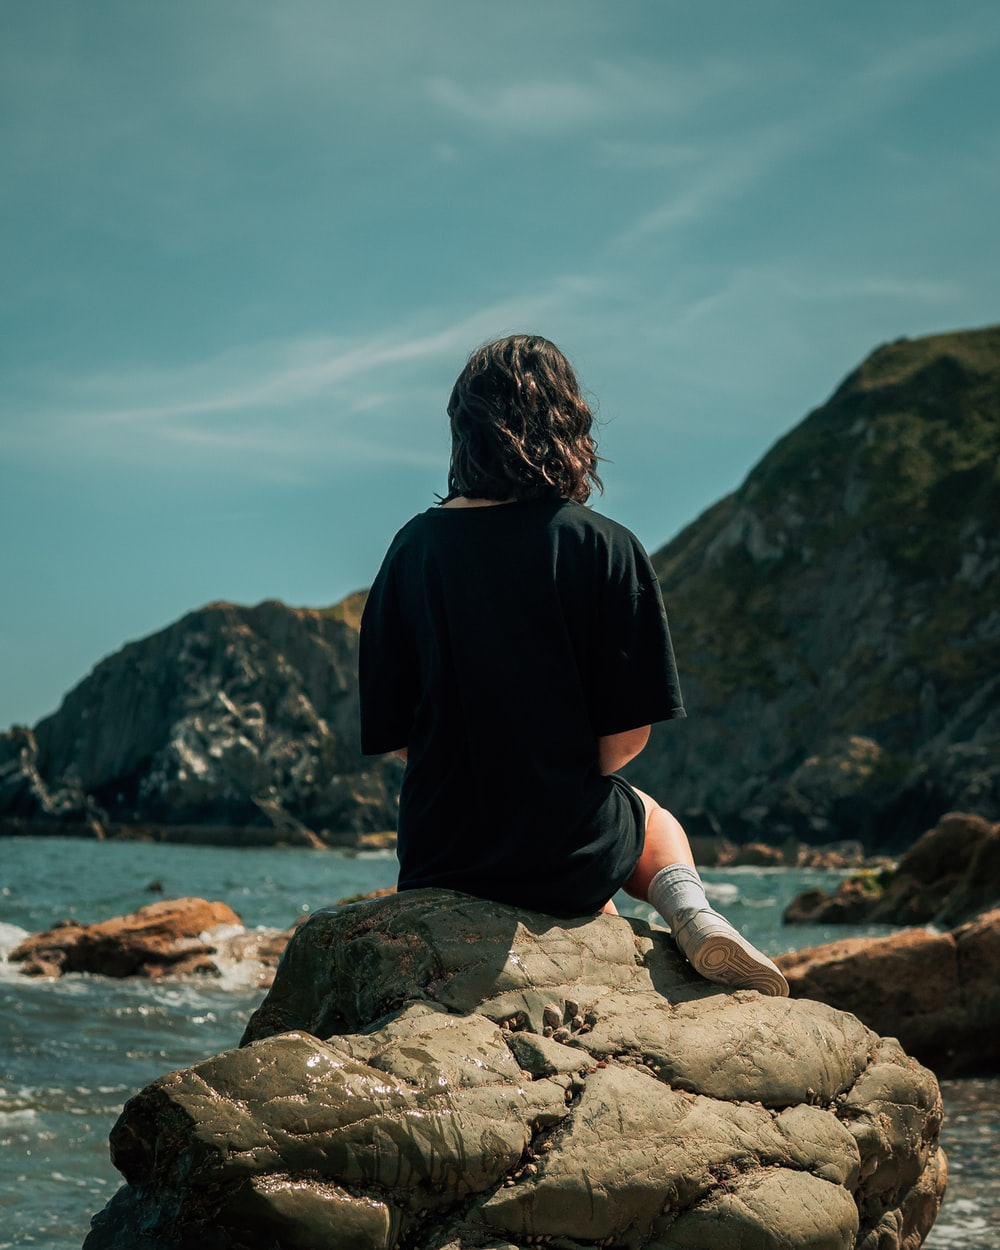 woman in black shirt sitting on rock near body of water during daytime